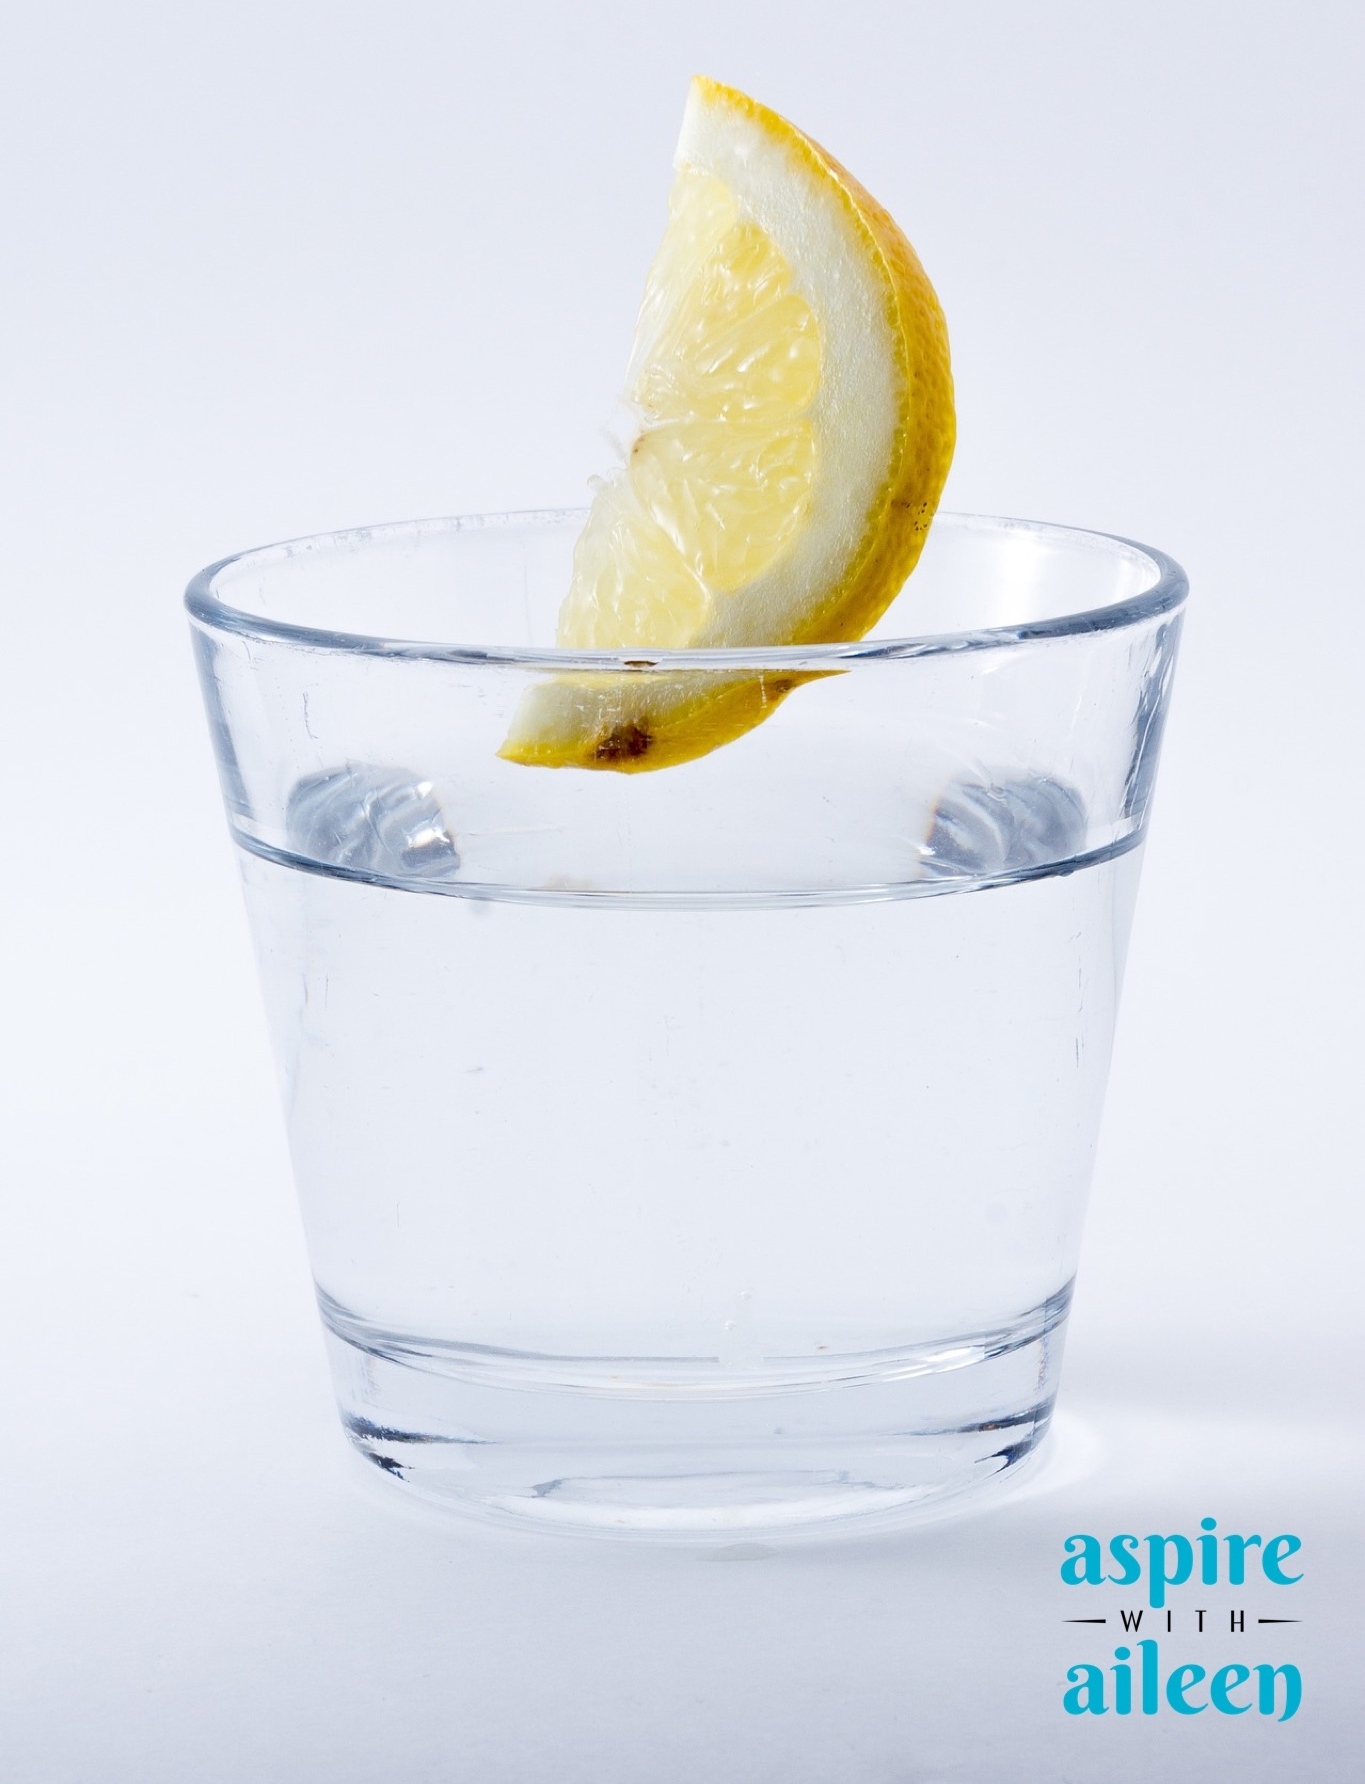 I try to start every day with hot water and lemon - even when I travel!